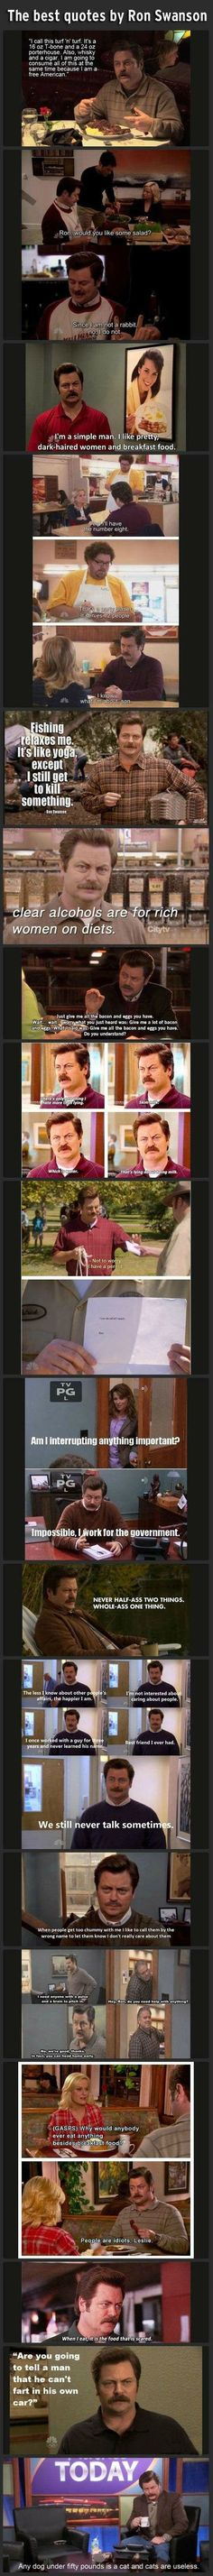 The greatest Ron Swanson quotes